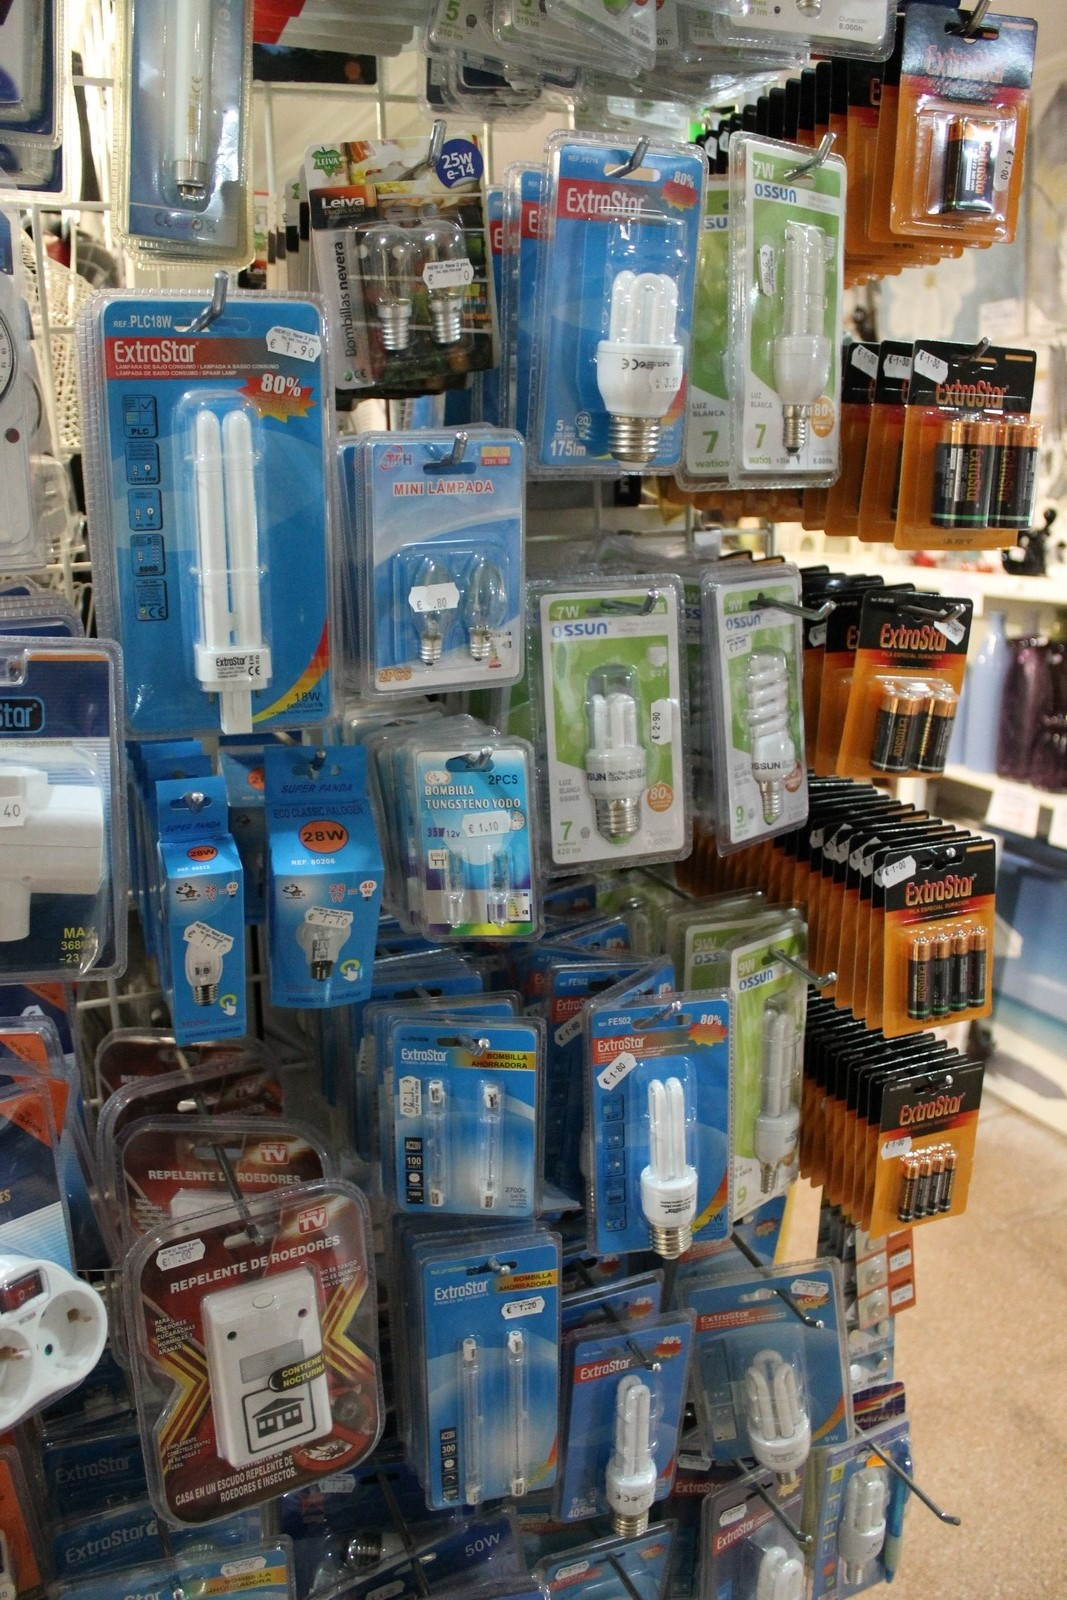 Lamps for sale, Torrevieja, Spain